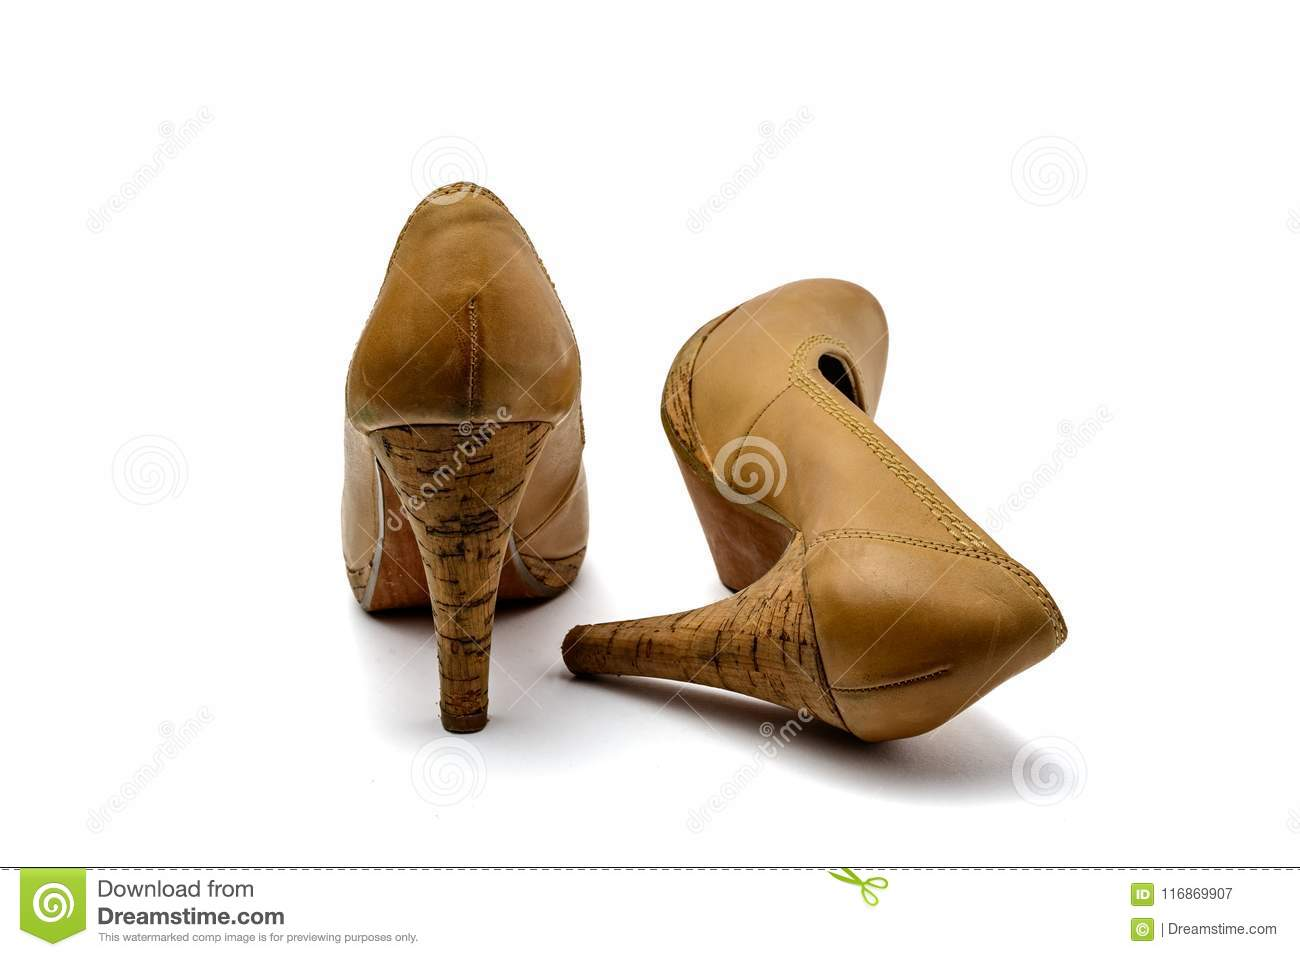 bca9f4a36f378 Brown Vintage Leather High Heel Plateau Pumps Stock Image - Image of ...